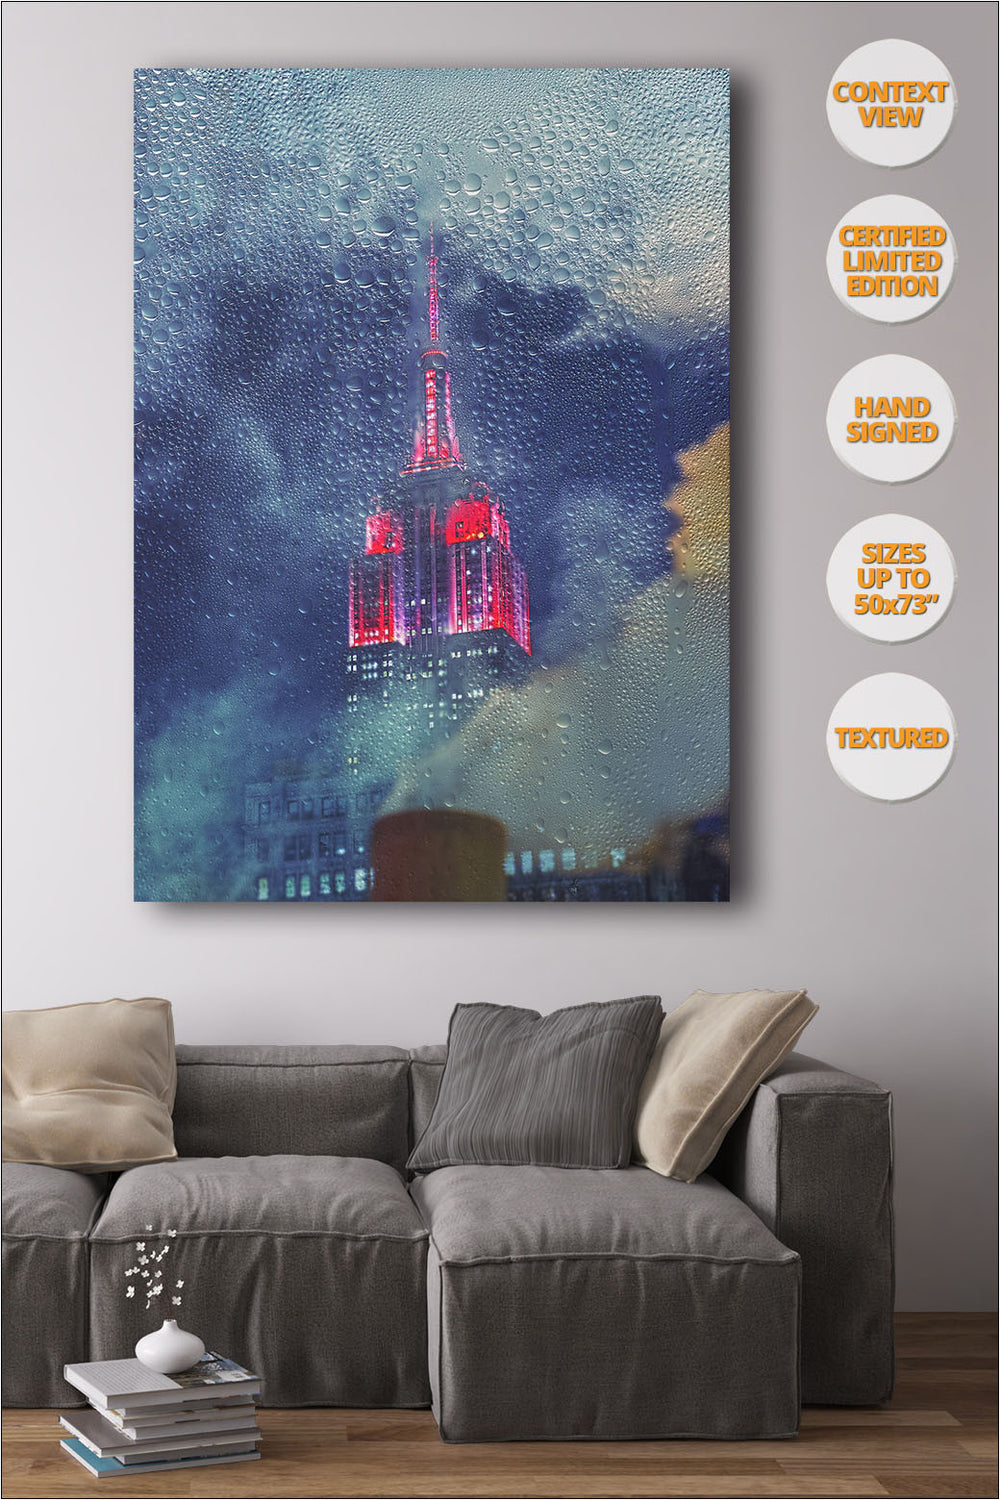 The Empire State by night, New York. | Print hanged in living room.